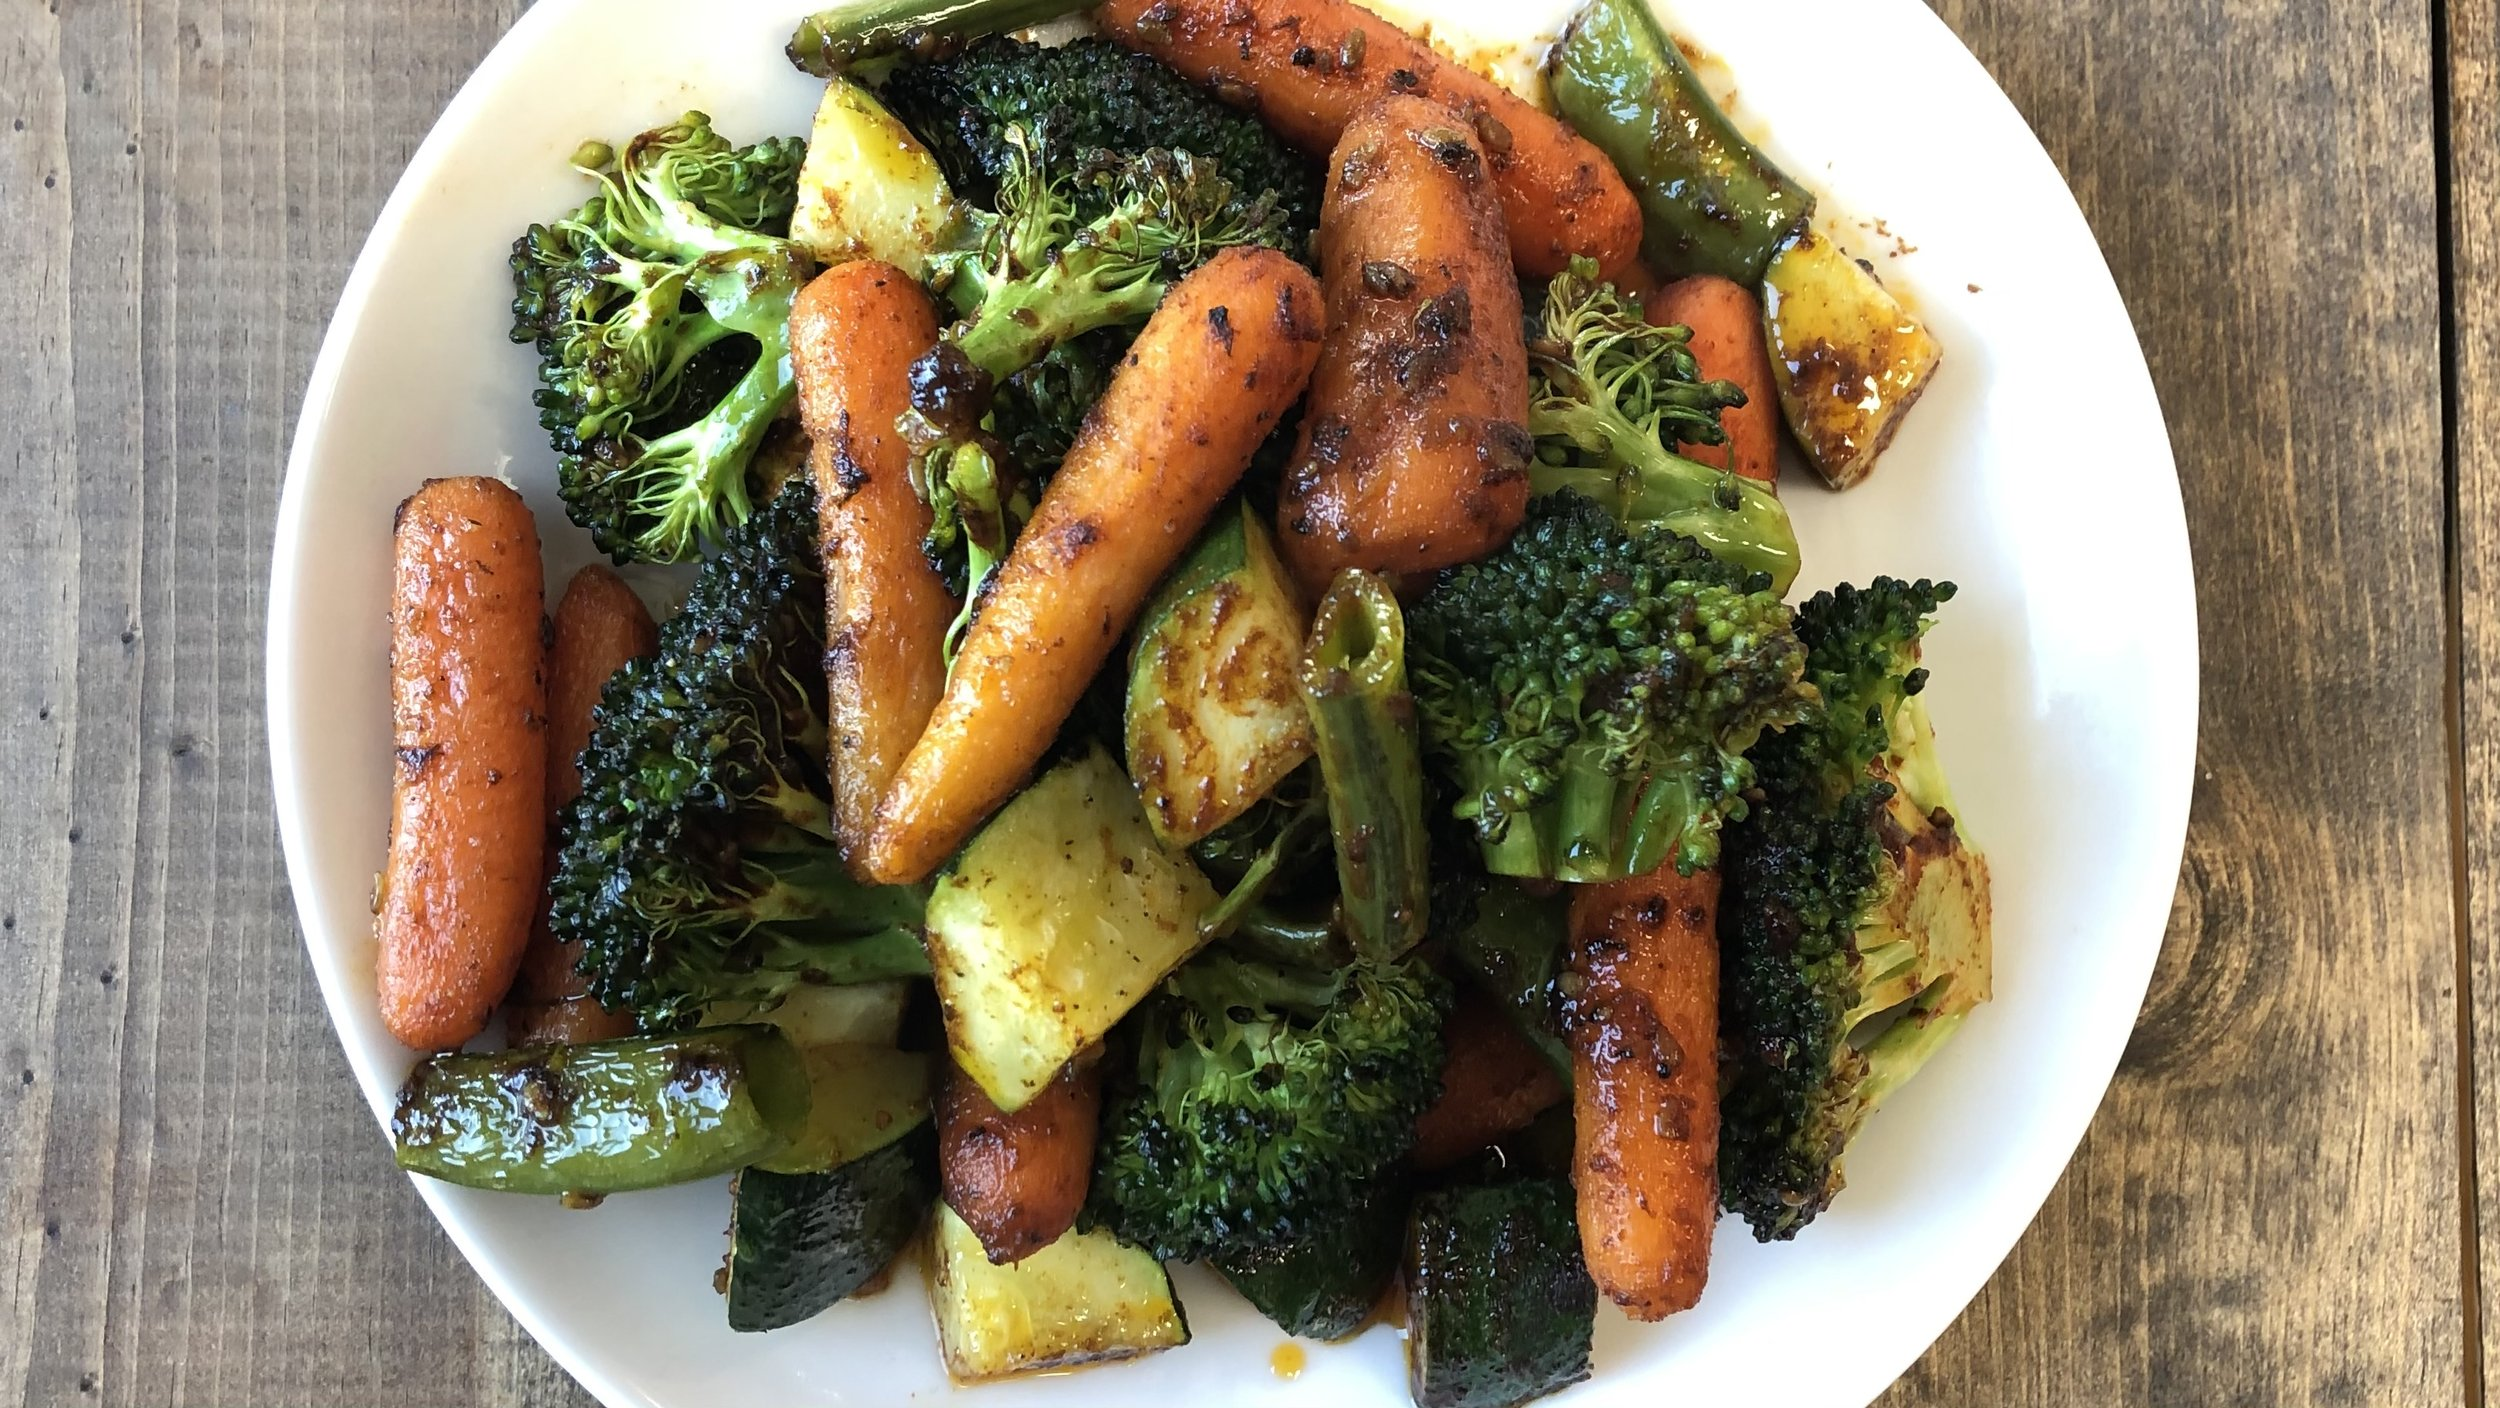 Roasted Veggies Zoom 16x9.jpg